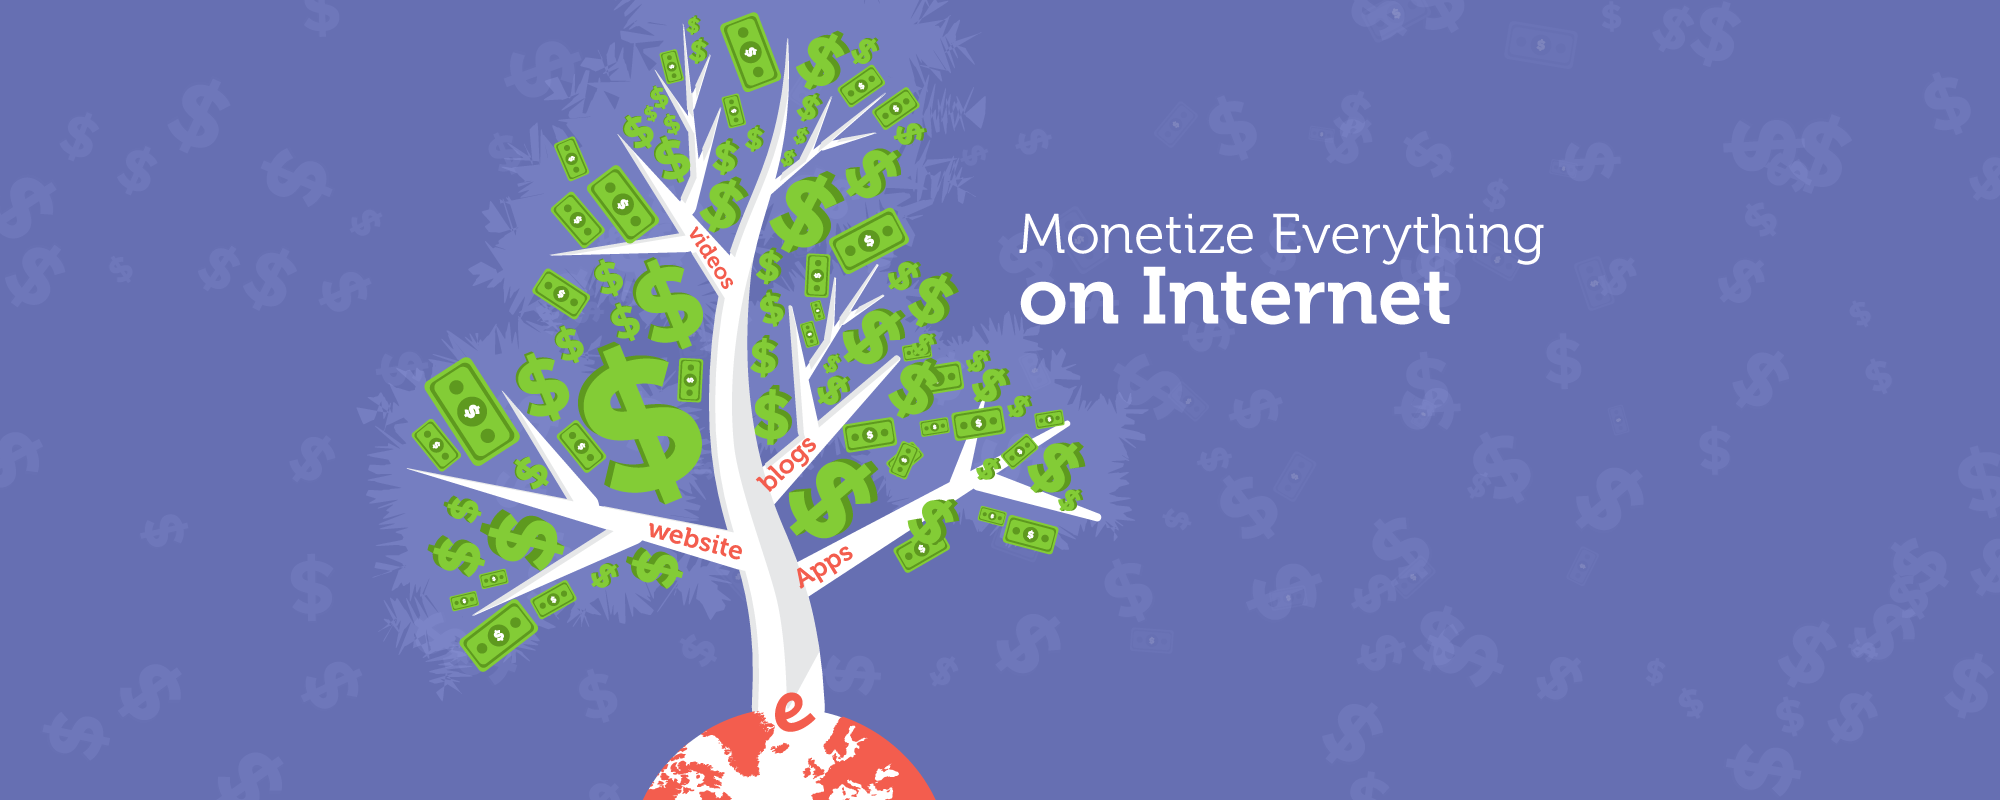 How to Monetize Website, Blog, App, Videos & Everything Else on Internet?